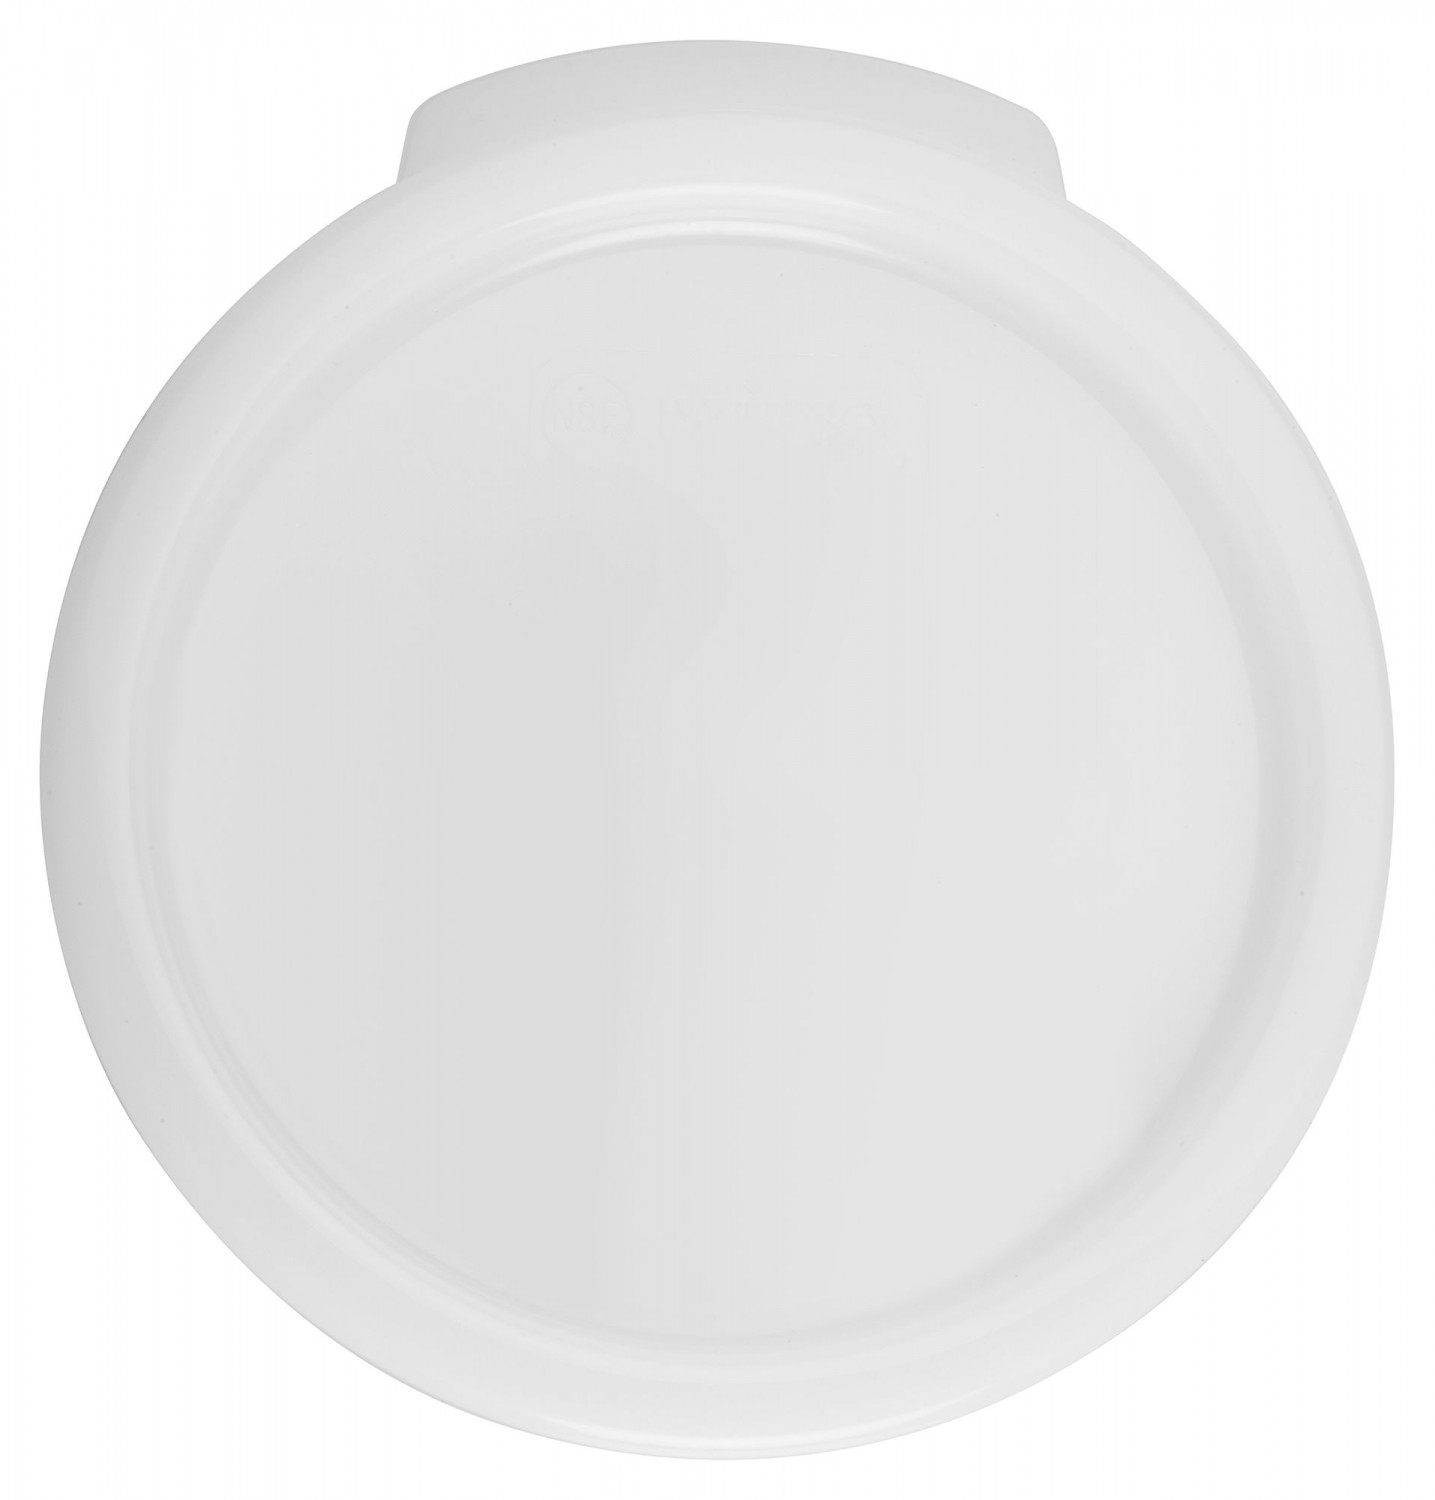 Winco PPRC-24C White Round  Storage Container Cover for 2 and 4 Qt. Containers